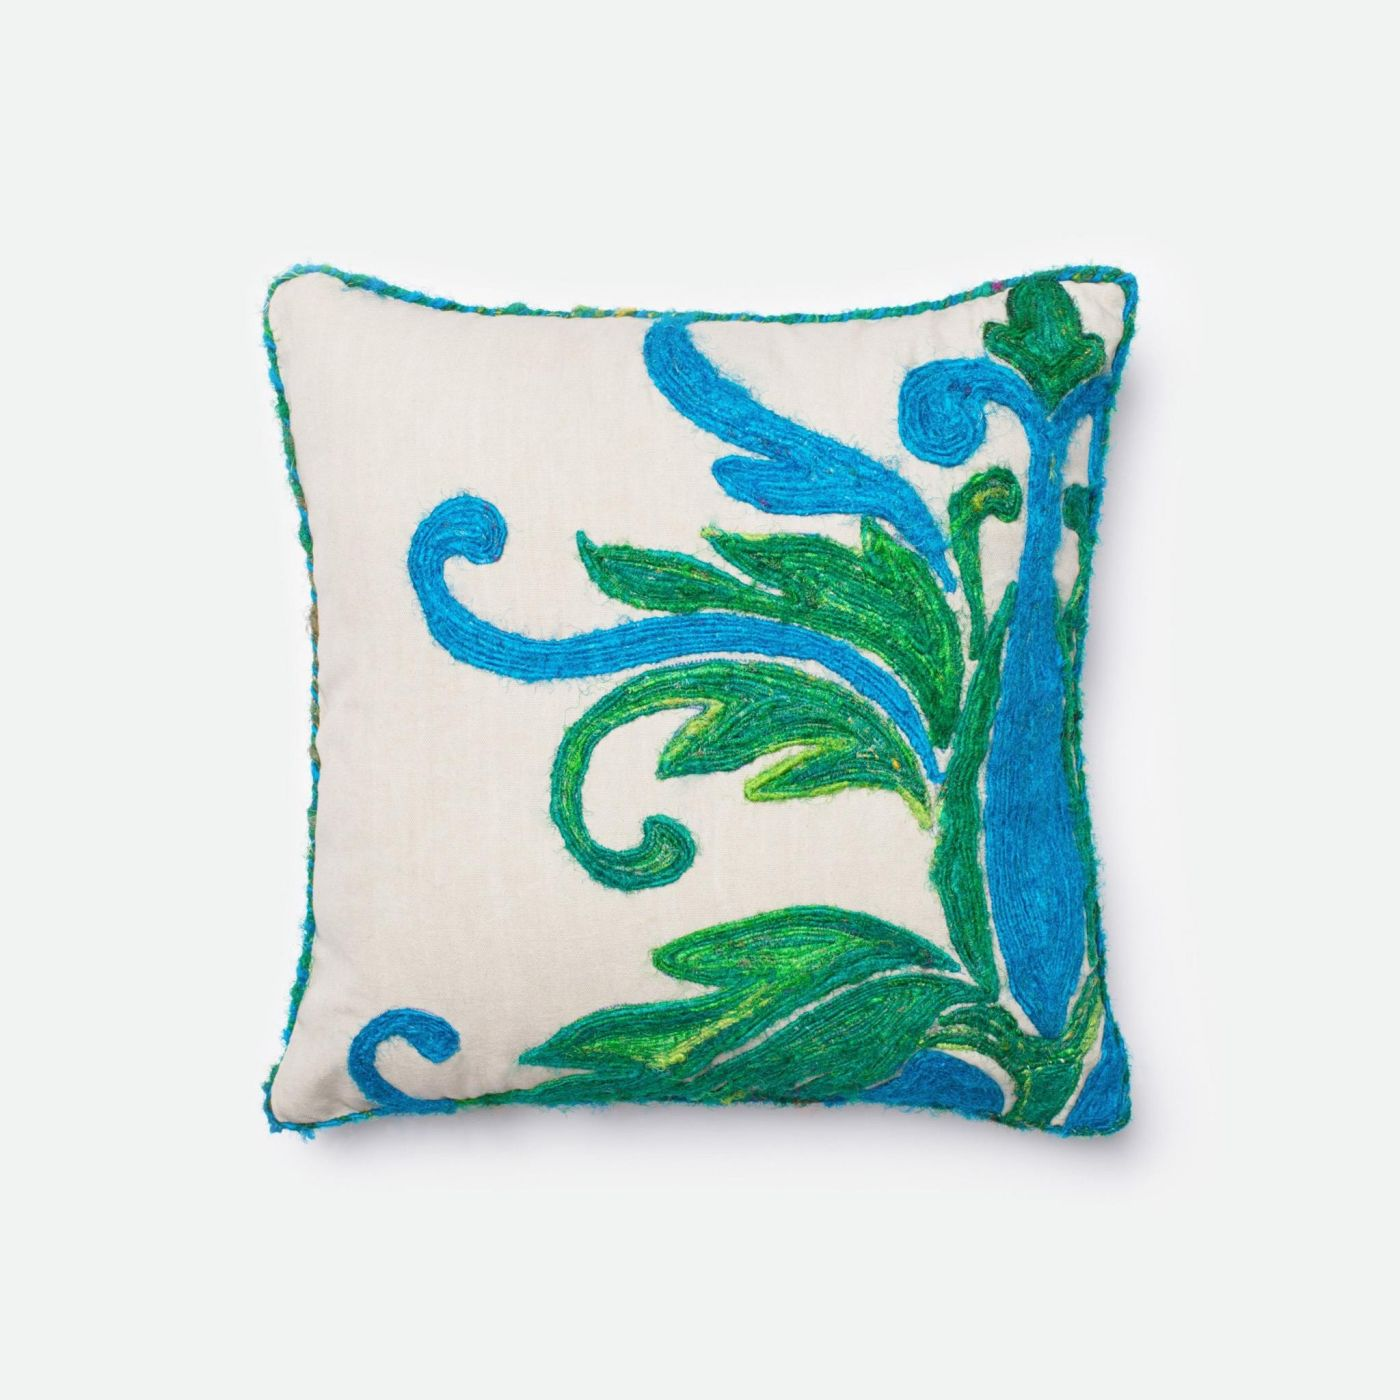 Throw Pillow Warehouse : Loloi Rugs Loloi Green / Blue Decorative Throw Pillow (P0232) DSETP0232GRBBPIL1. Only $69.00 at ...